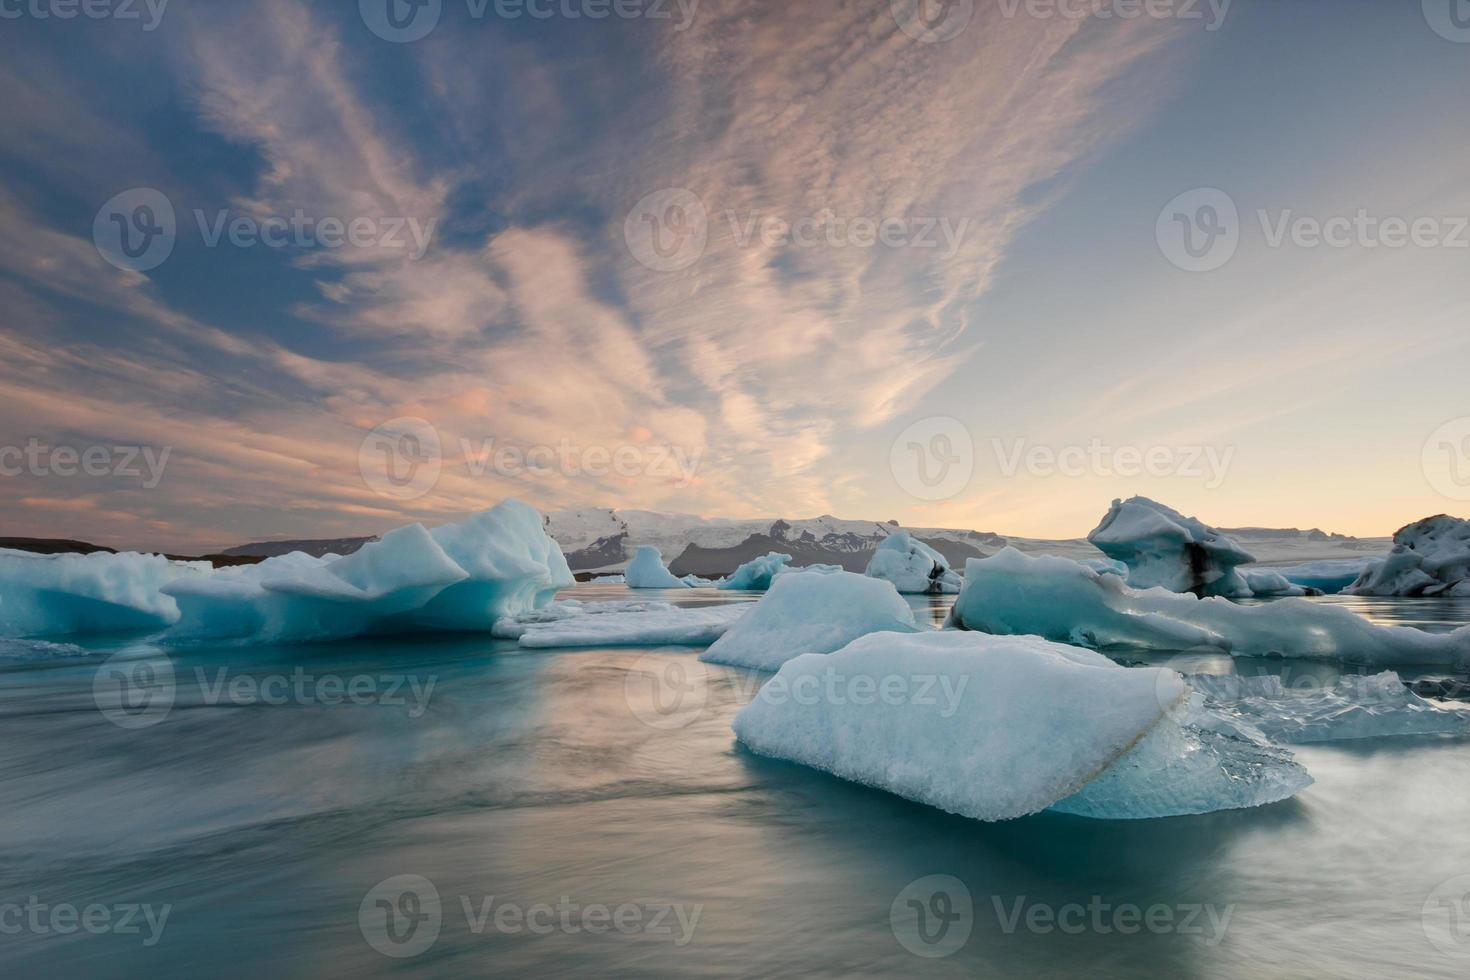 Icebergs in Jokulsarlon glacier lake at sunset photo